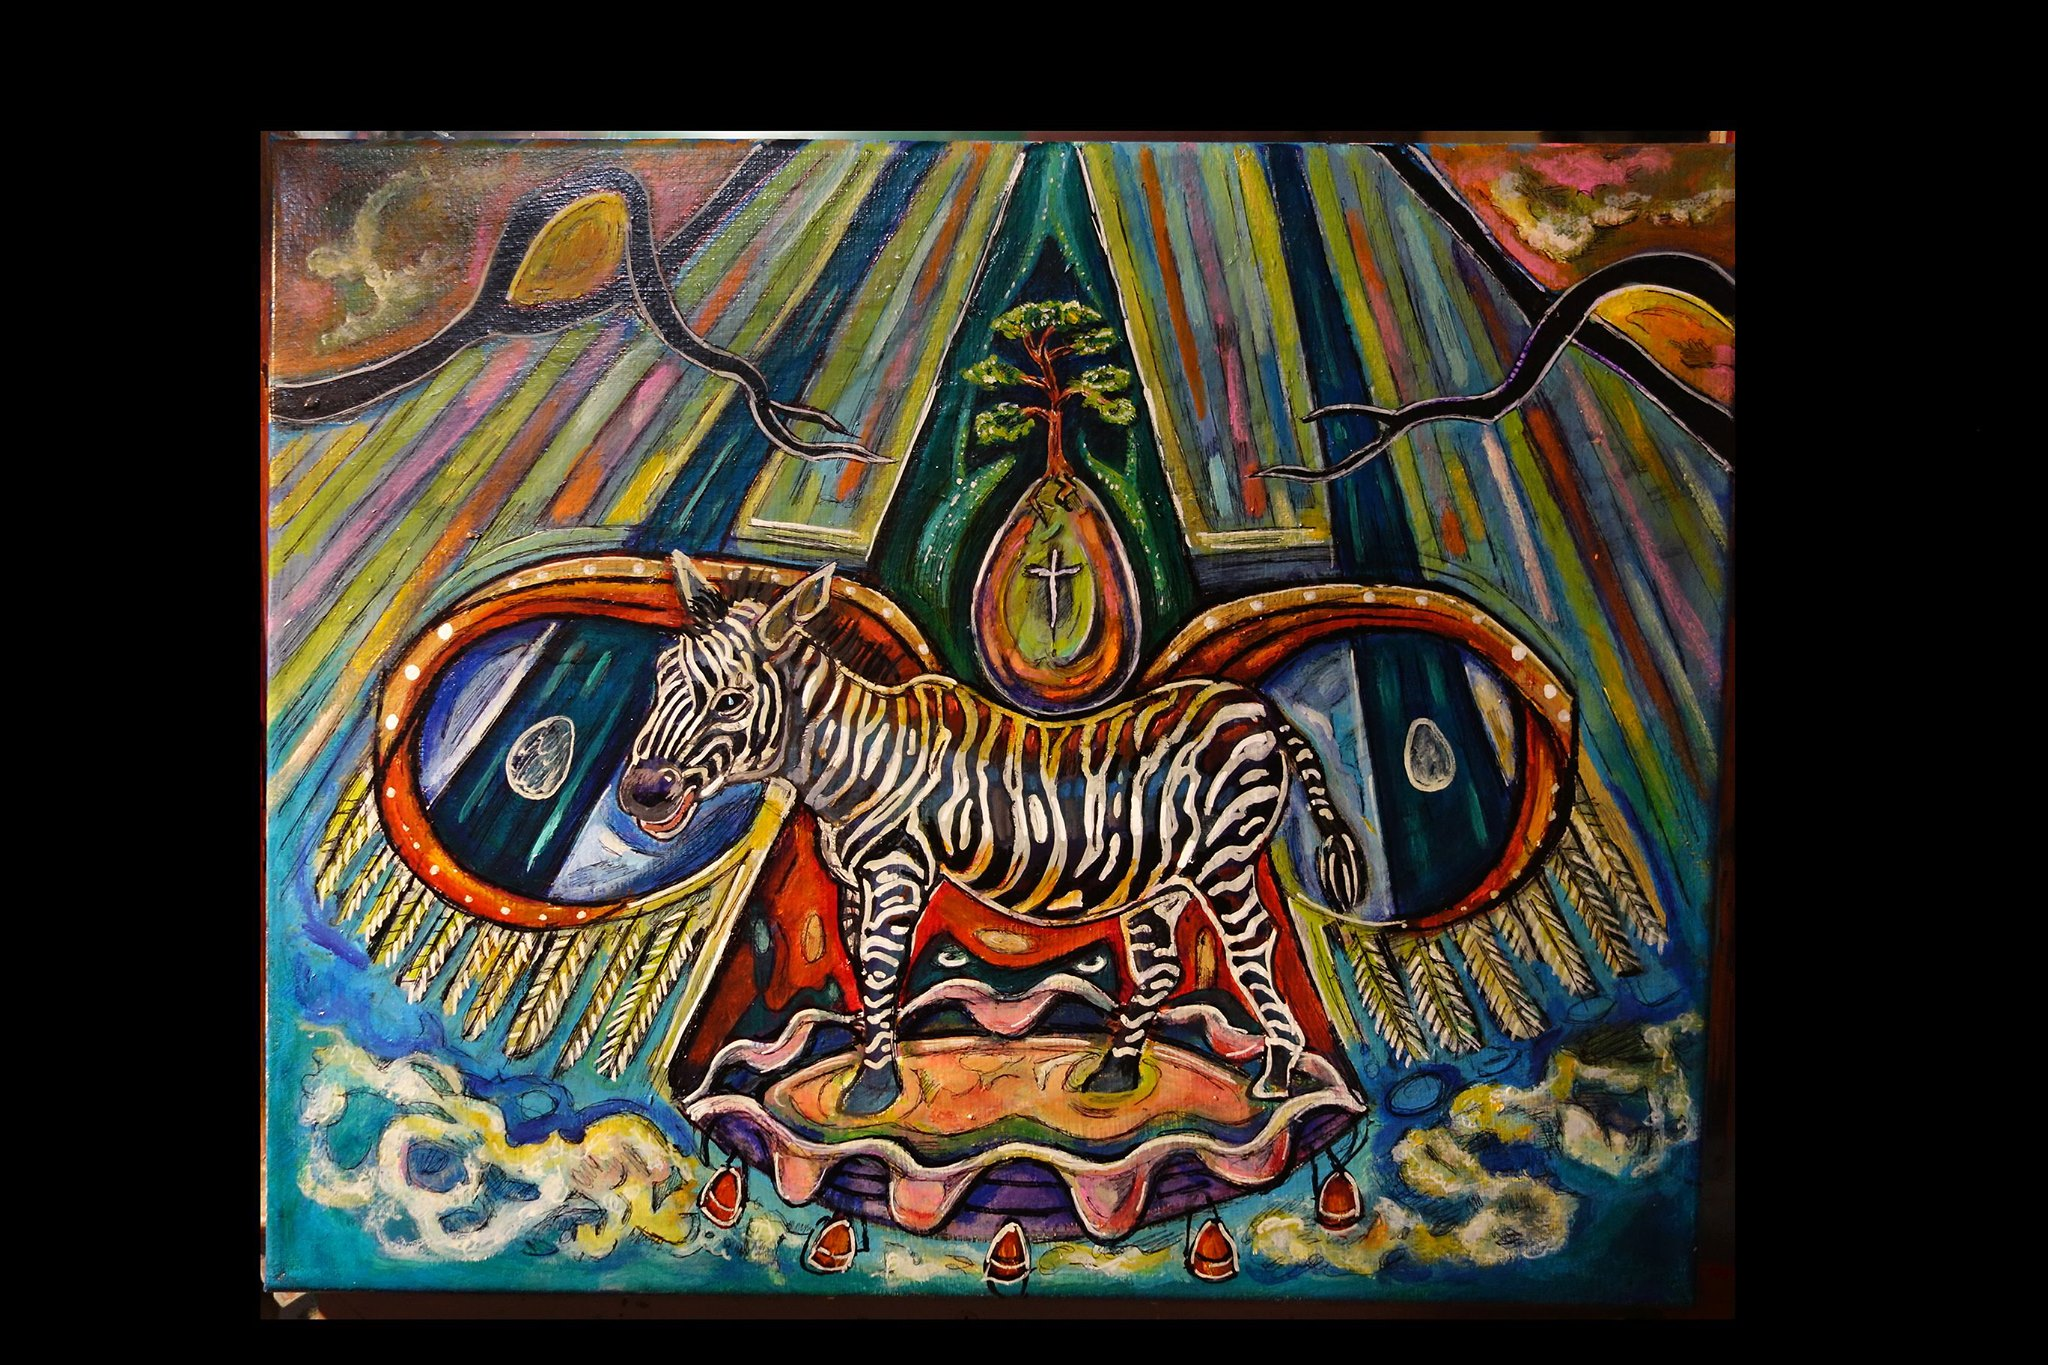 Goddess of the Jungle and the Zebra by Kevin Blythe Sampson